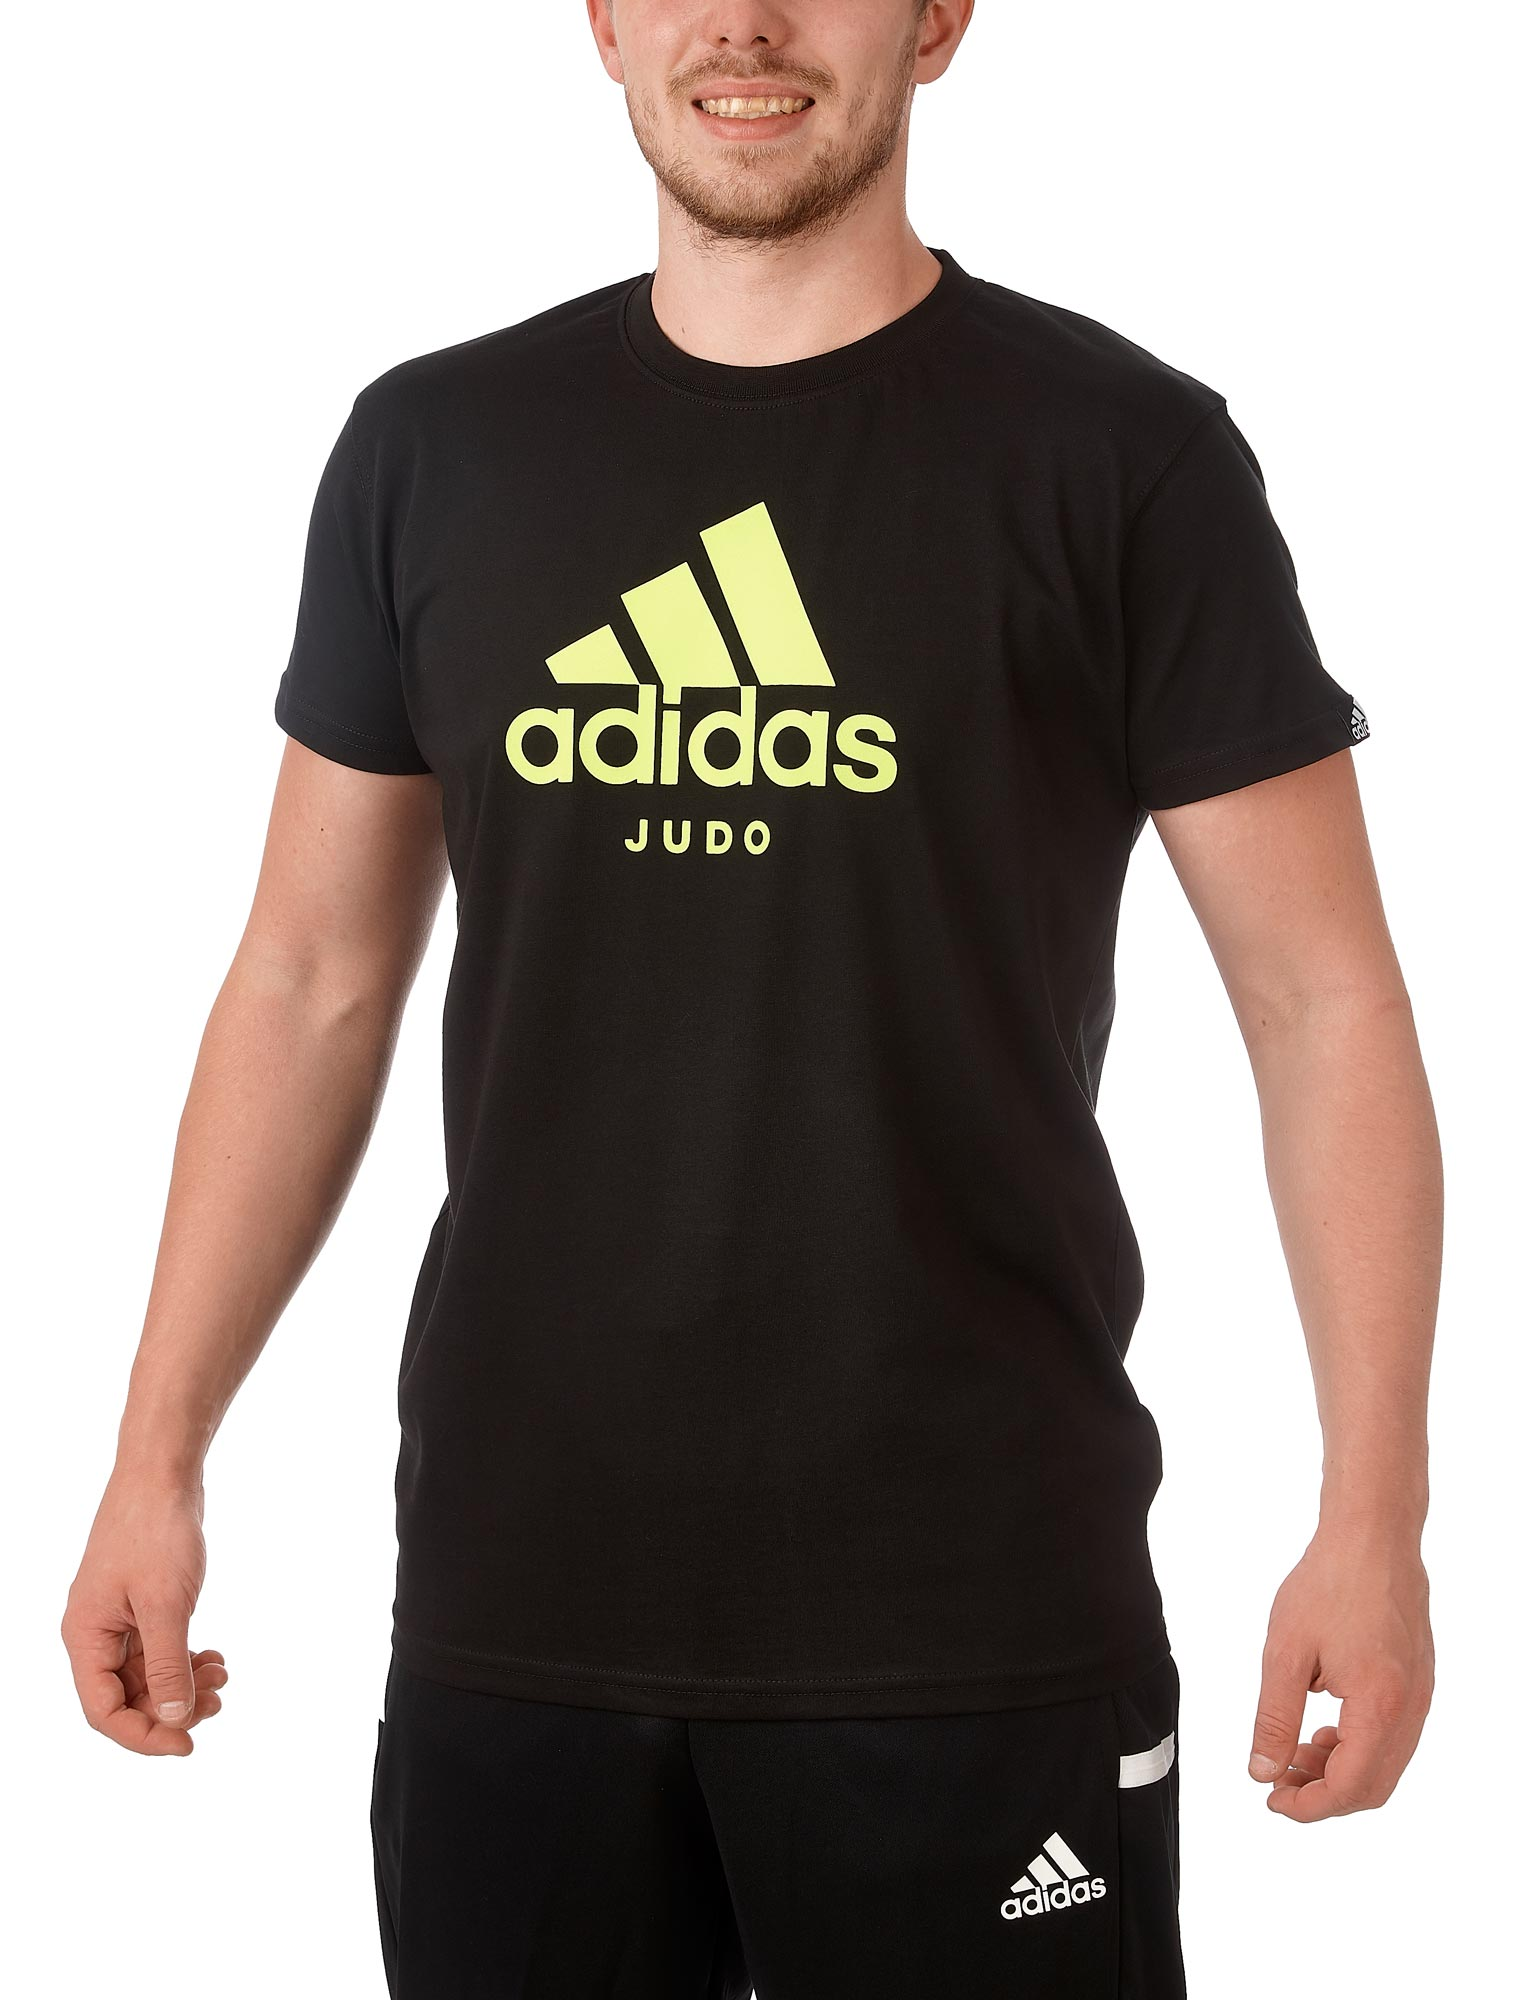 adidas Community Line T Shirt Judo Performance ADICTJ blackyellow